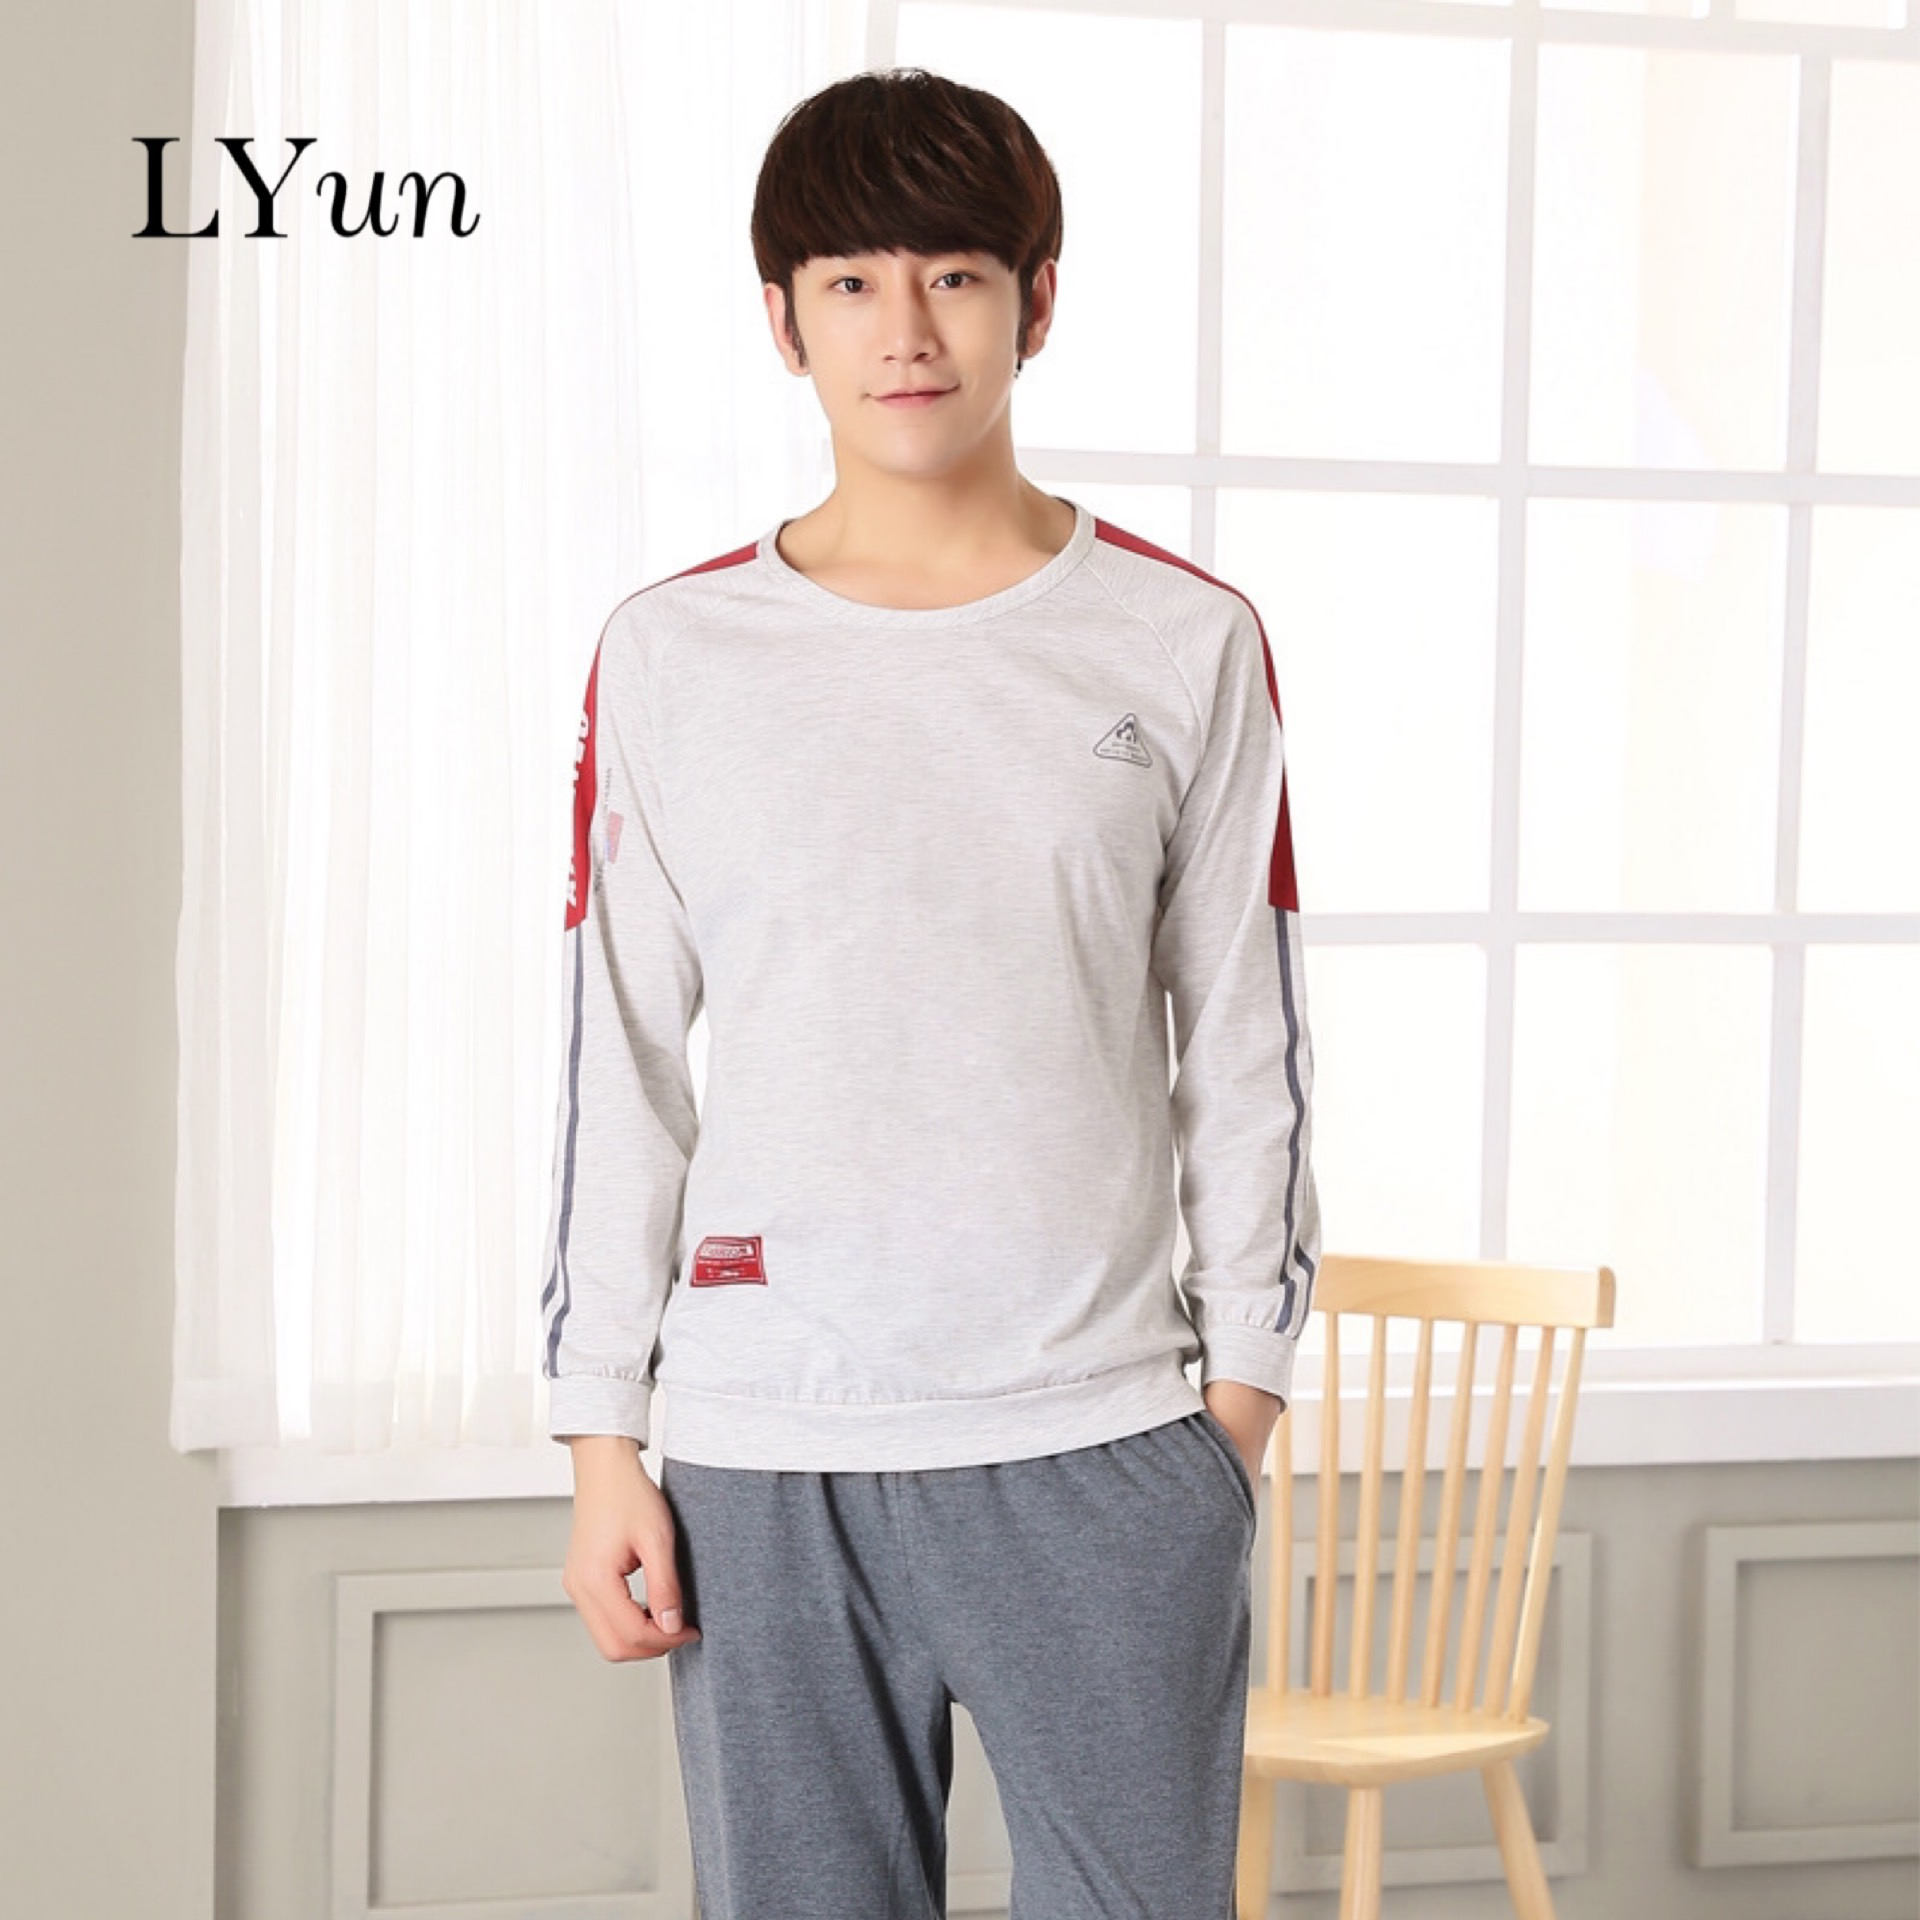 LYun Pajamas Men's Summer Cotton Long-sleeved Casual Thin Section Men's Youth Summer Cotton Home Service Suit Spring And Autumn